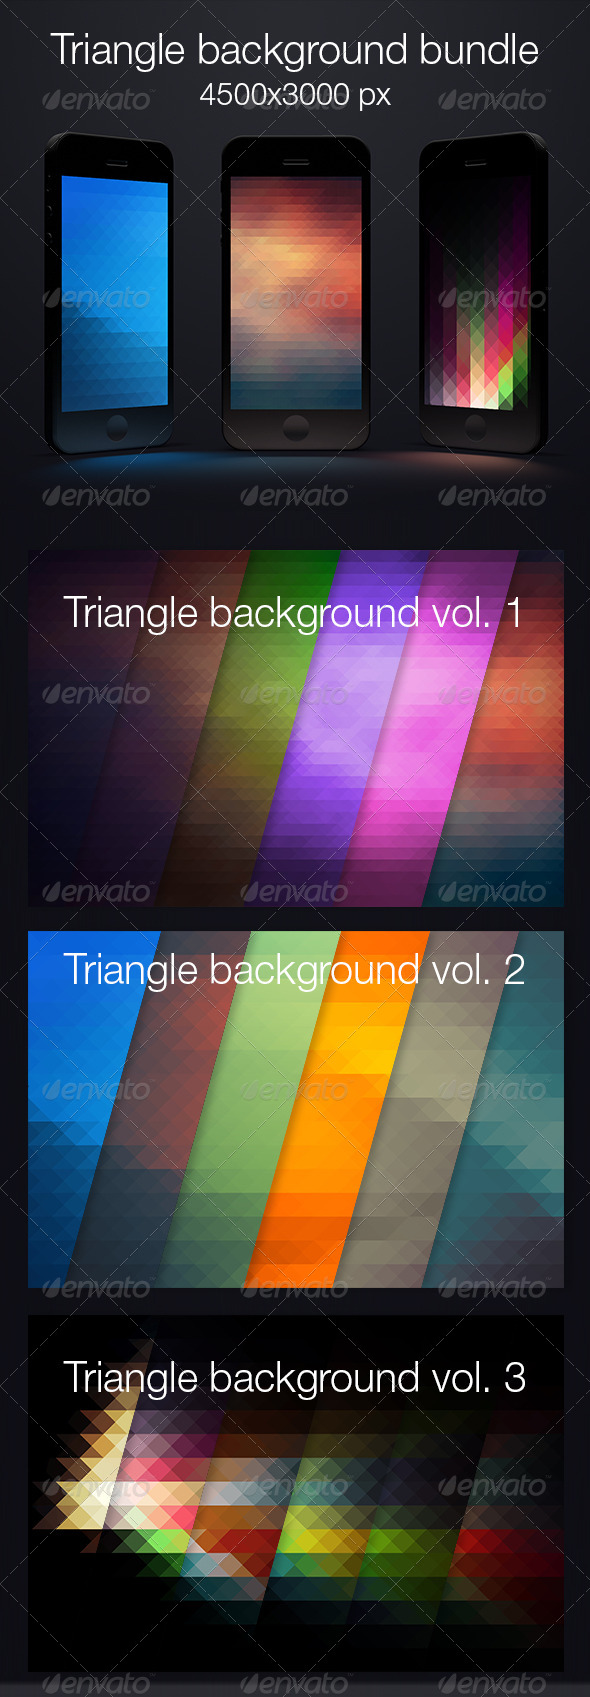 GraphicRiver Bundle triangle background 7119365